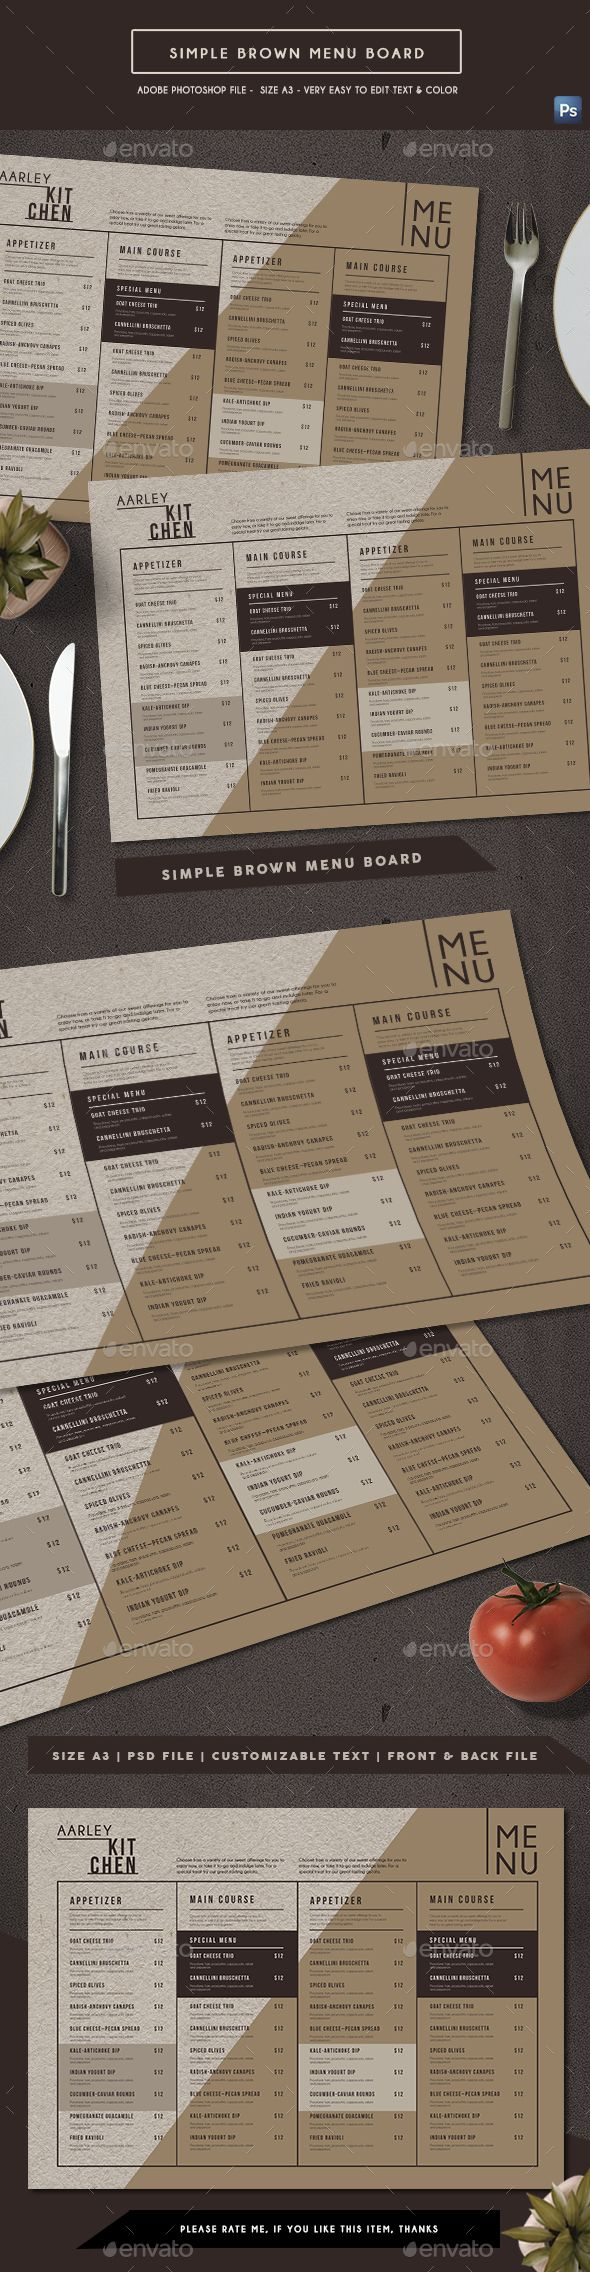 Simple Brown Menu Board #drink #menu • Download ➝ https://graphicriver.net/item/simple-brown-menu-board/21288056?ref=pxcr